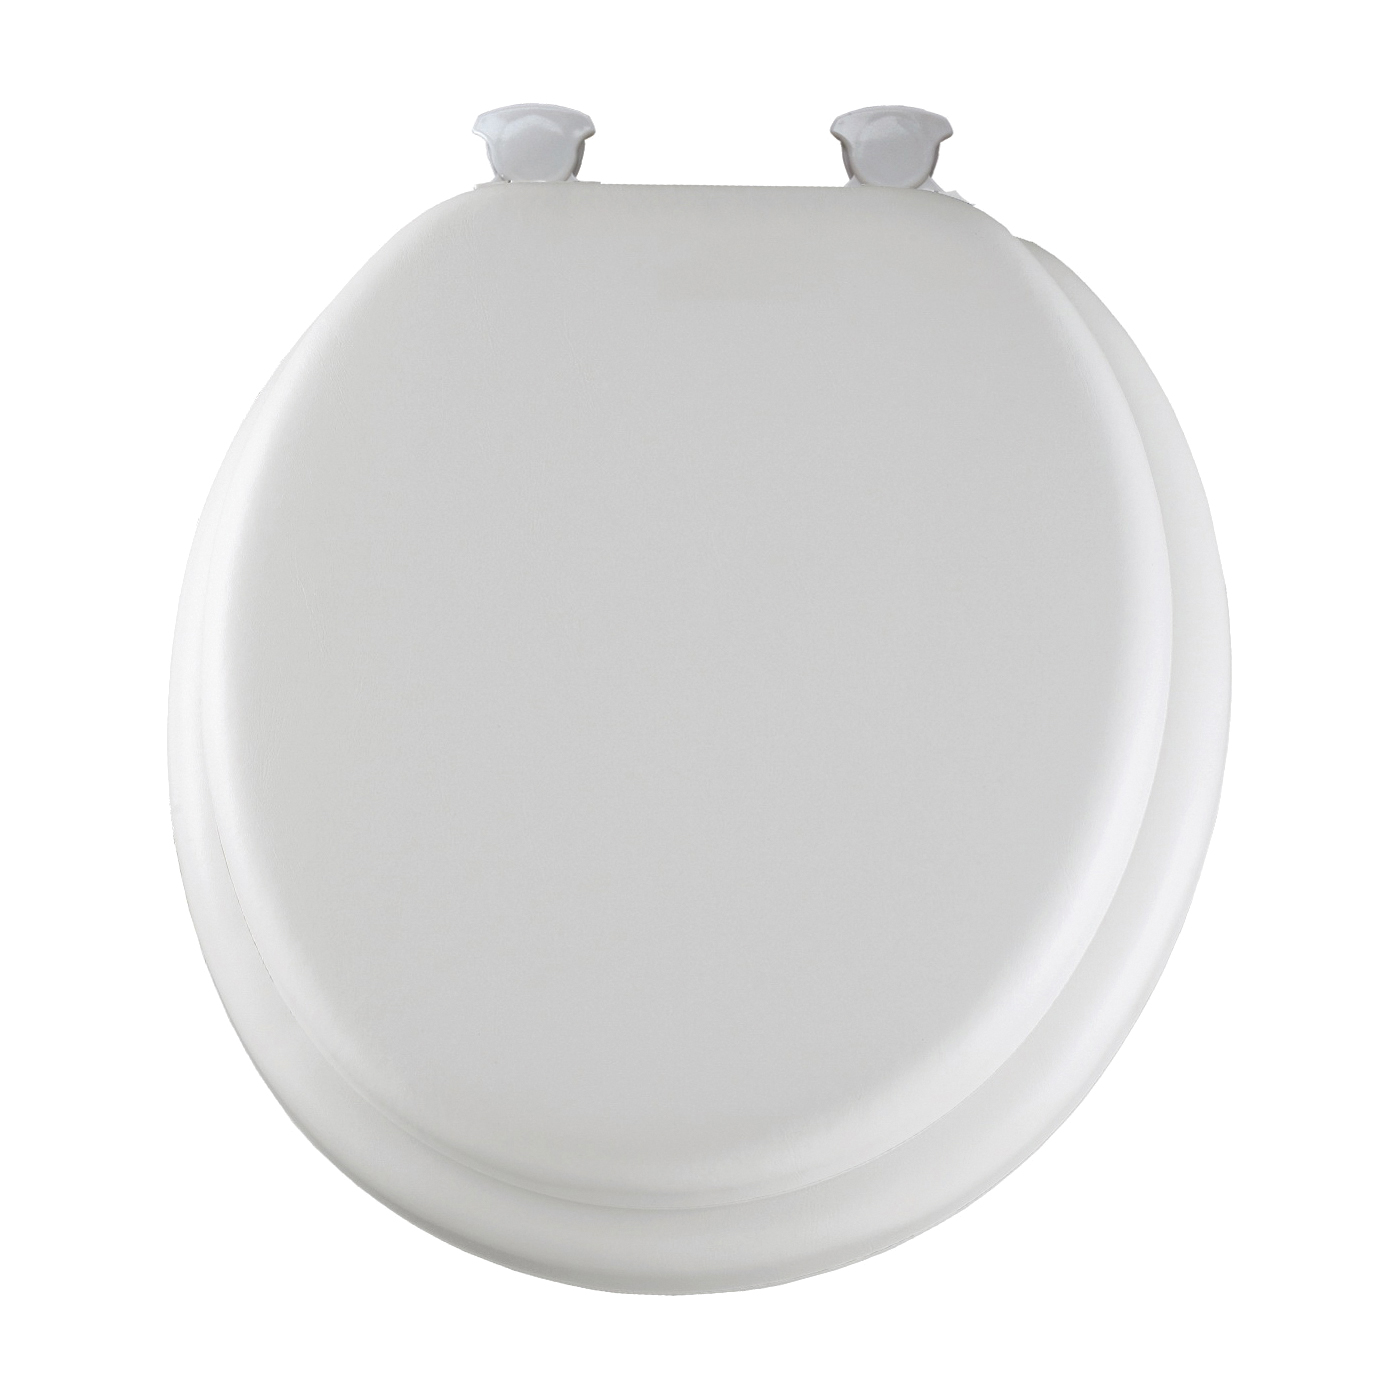 Picture of Mayfair 13EC-000 Toilet Seat, Round, Foam/Vinyl/Wood, White, Twist Hinge